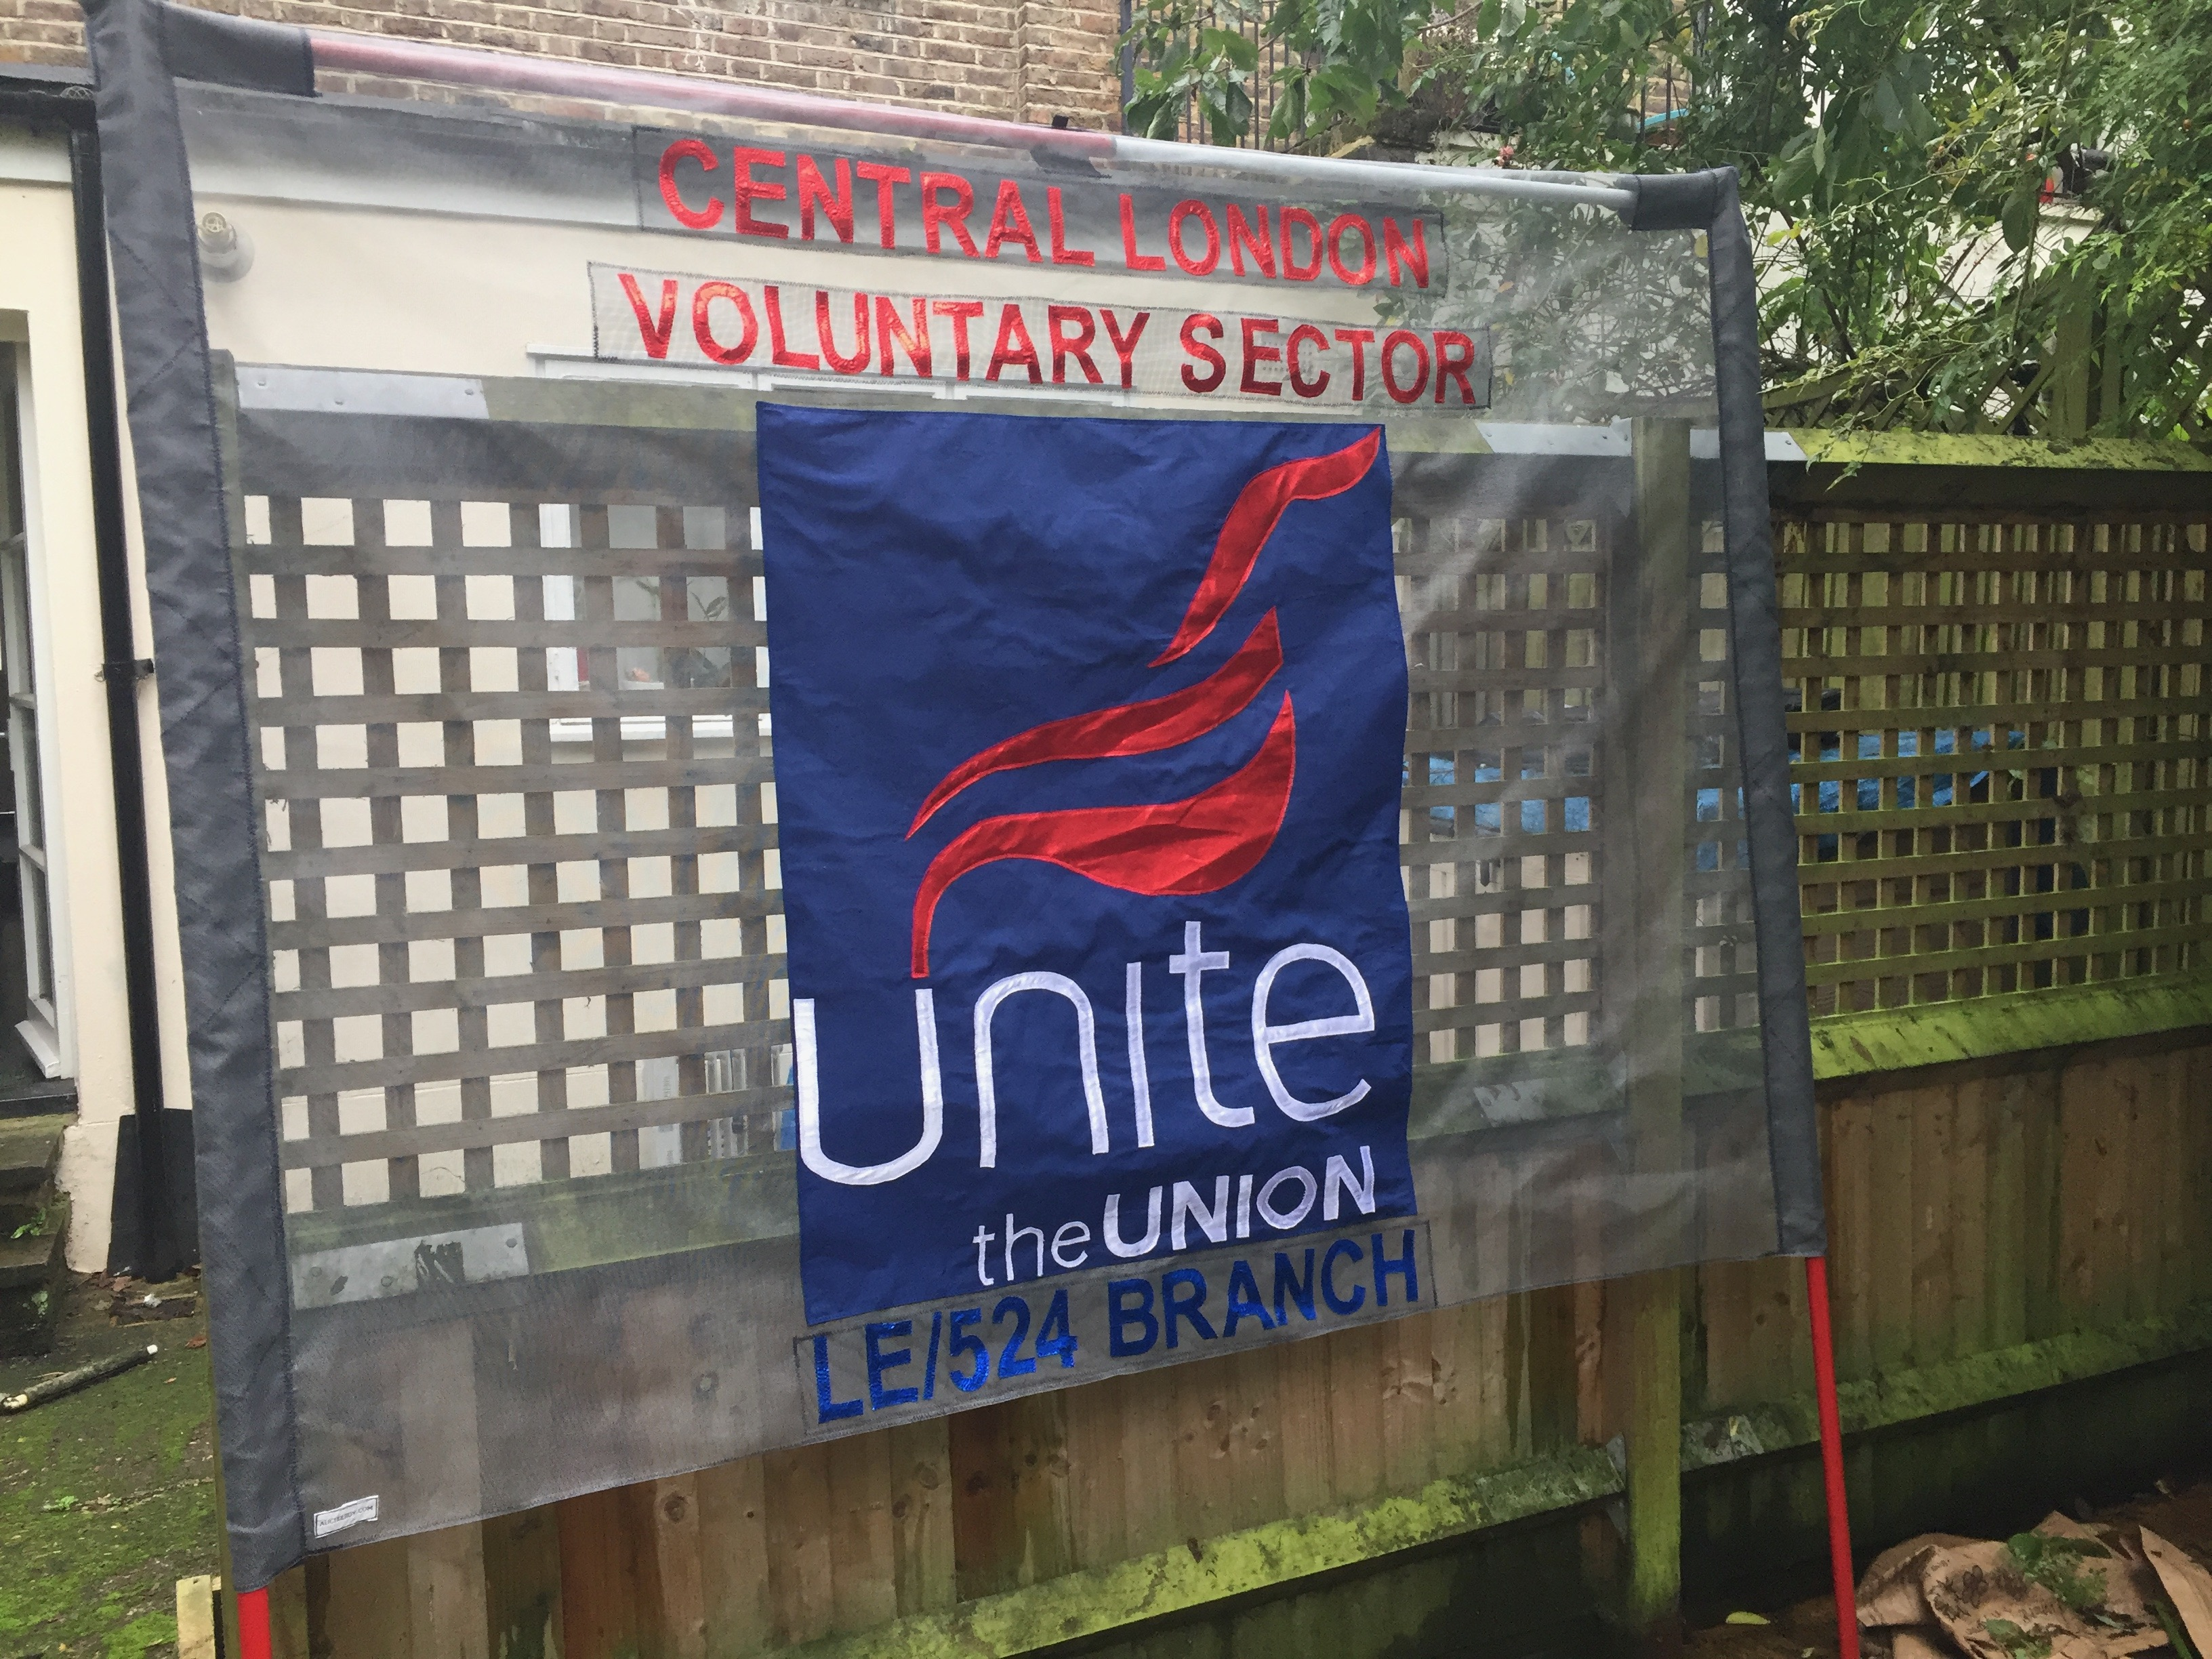 Unite the Union LE/524 Branch